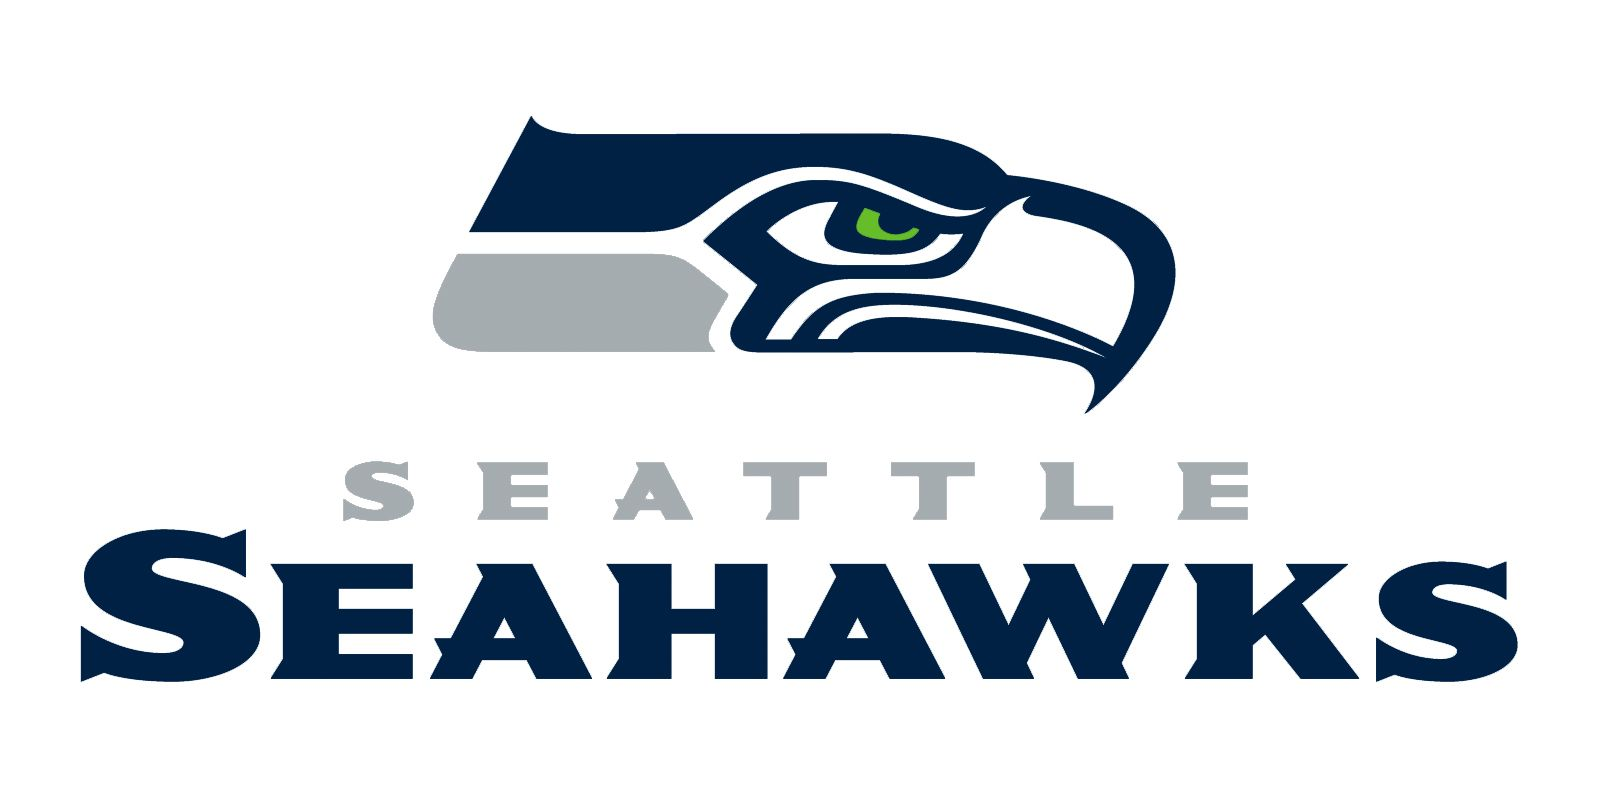 Symbol Seattle Seahawks All Logos World Pinterest Seattle